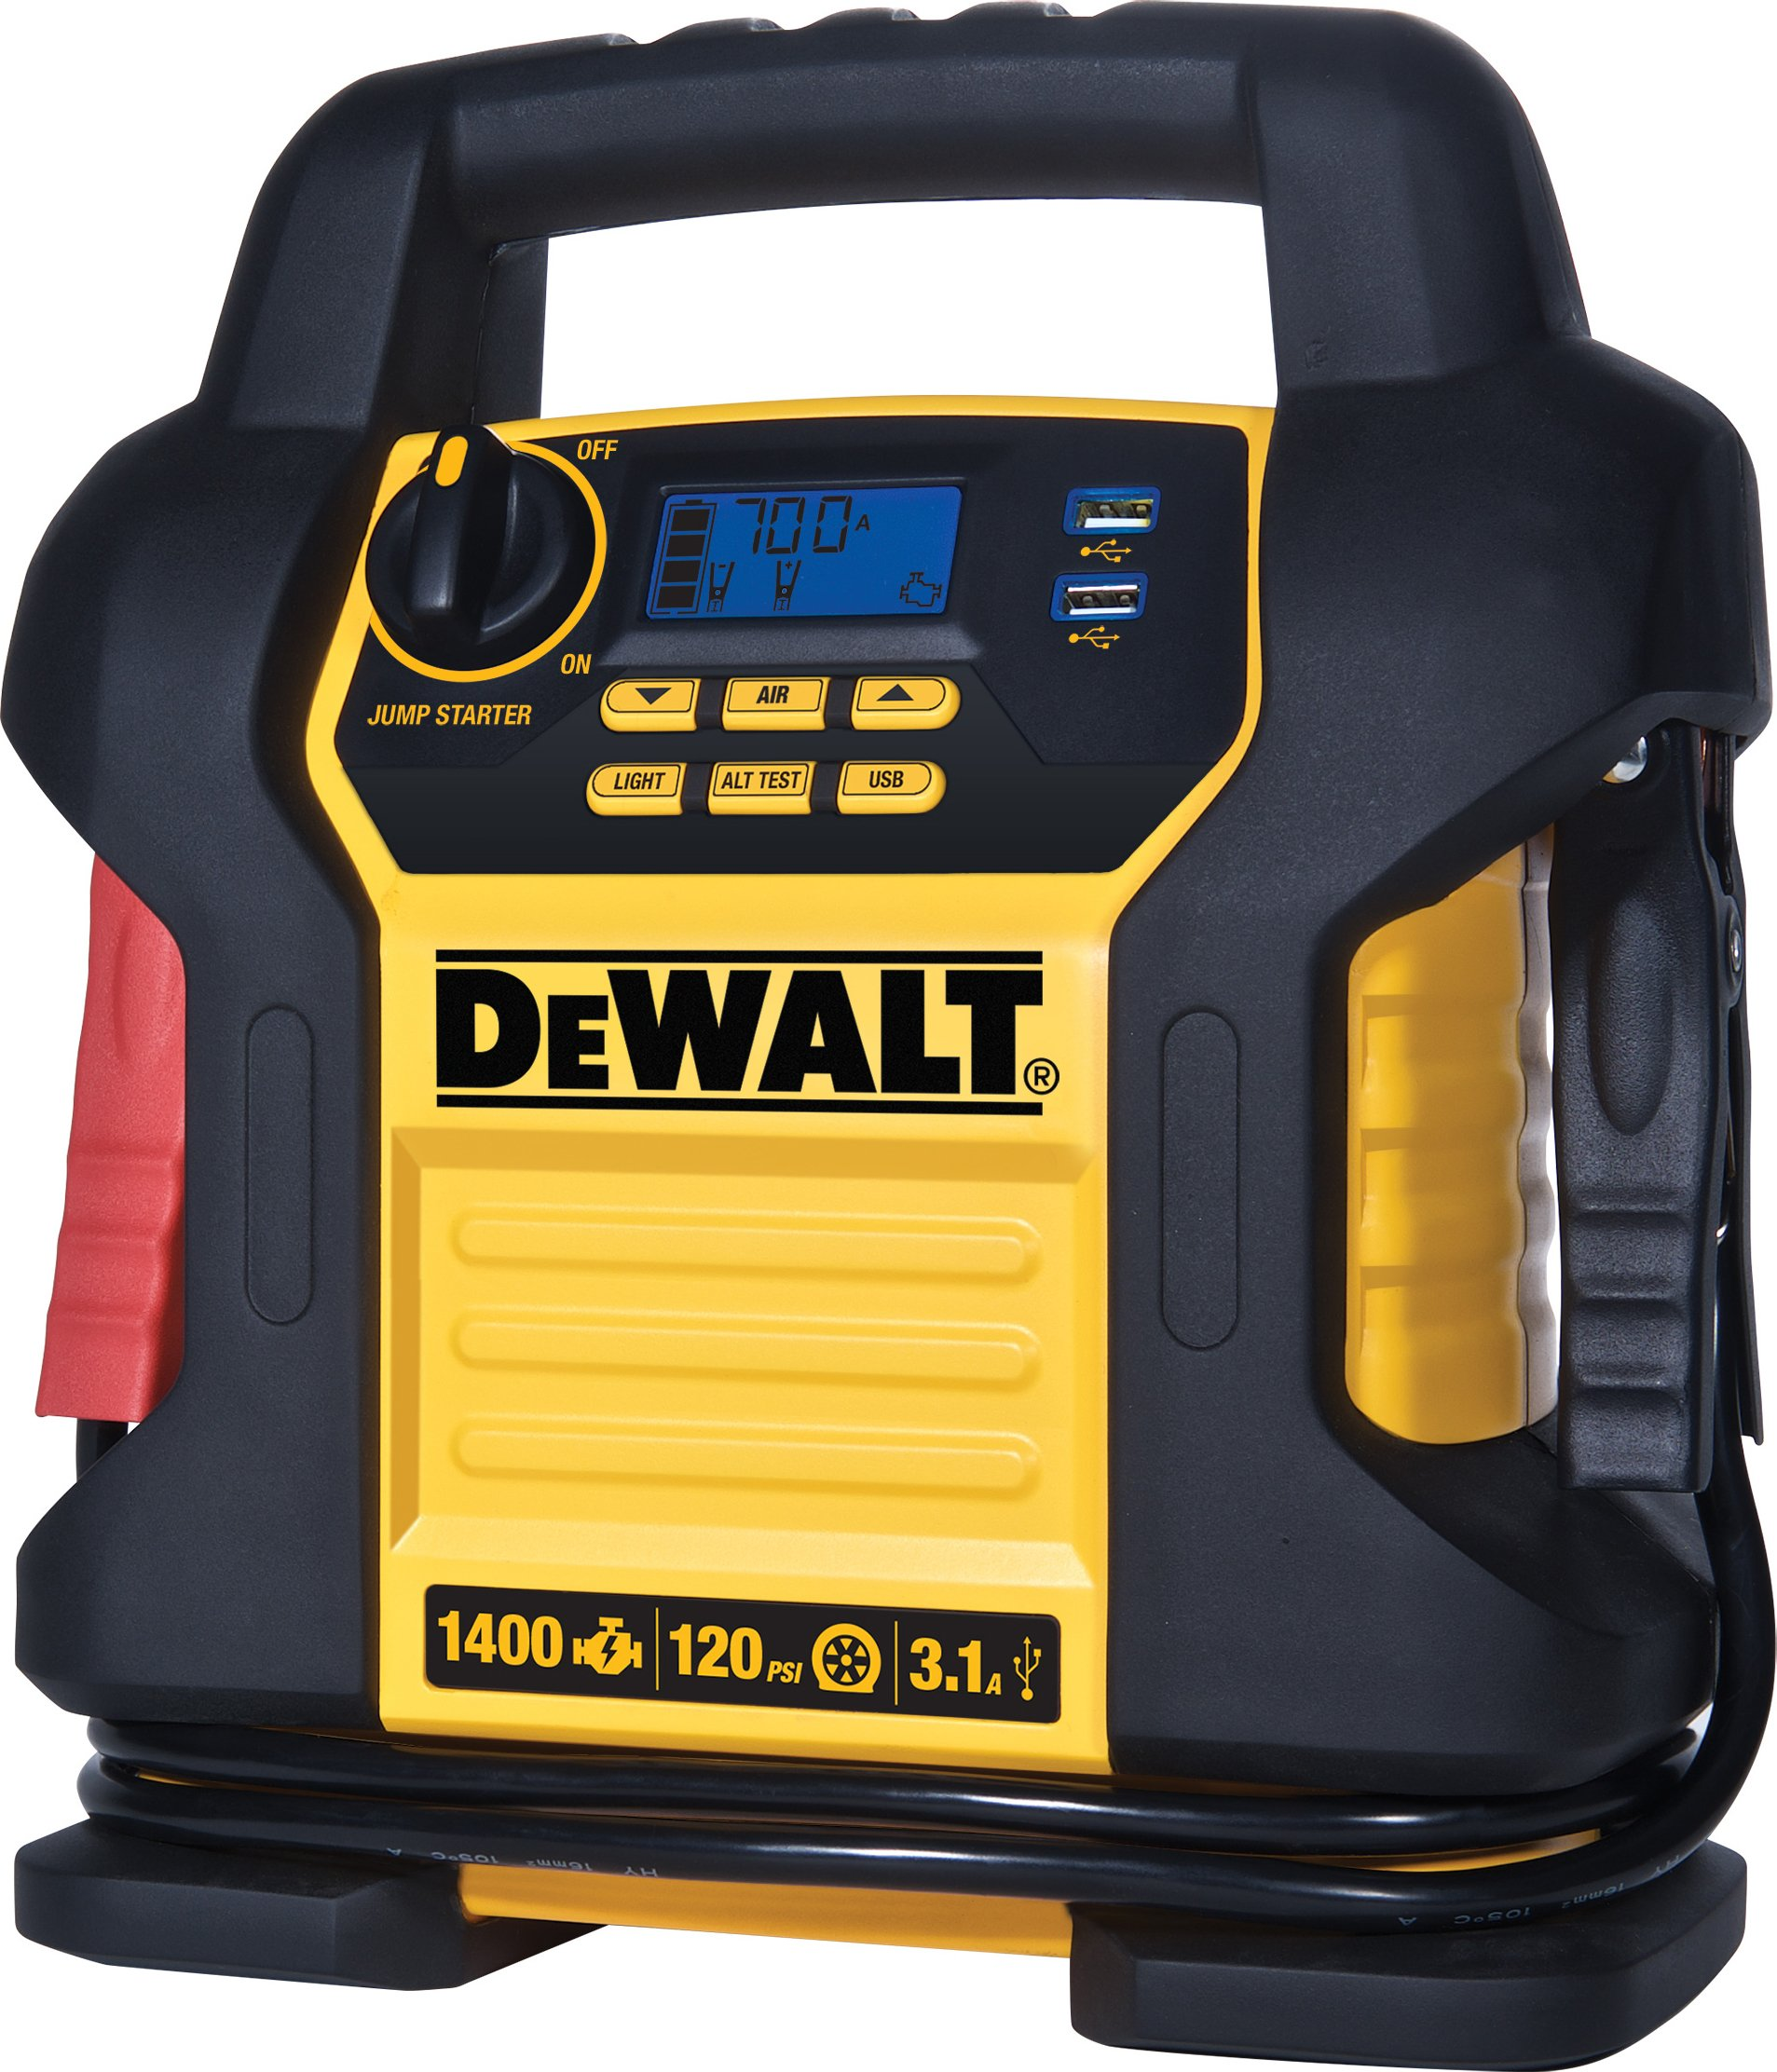 DEWALT DXAEJ14 Digital Portable Power Station Jump